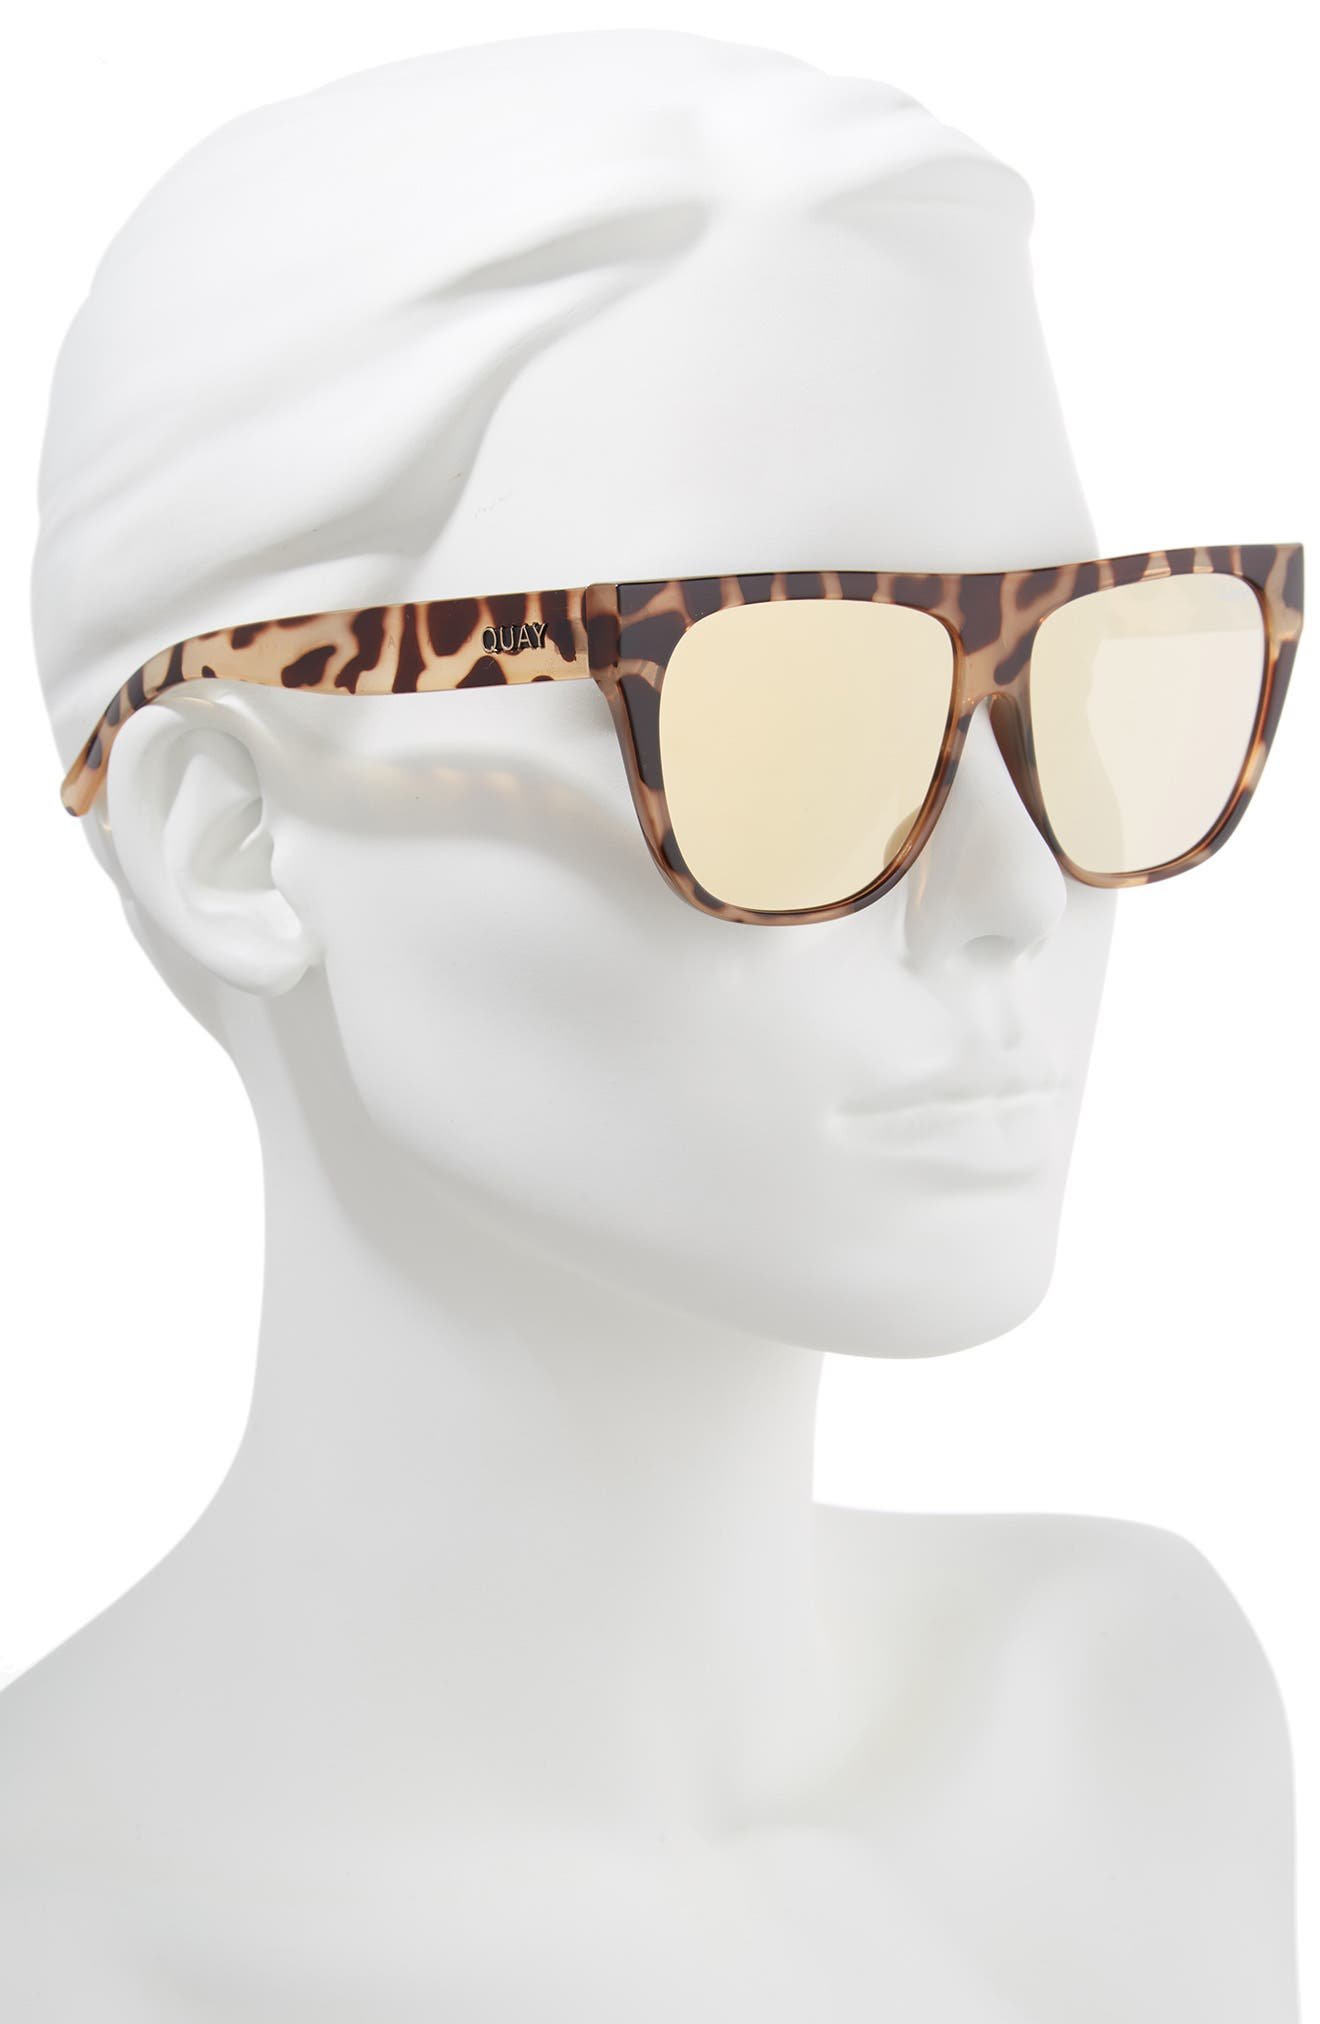 Drama by Day 55mm Square Sunglasses,                             Alternate thumbnail 2, color,                             TORT/ GOLD